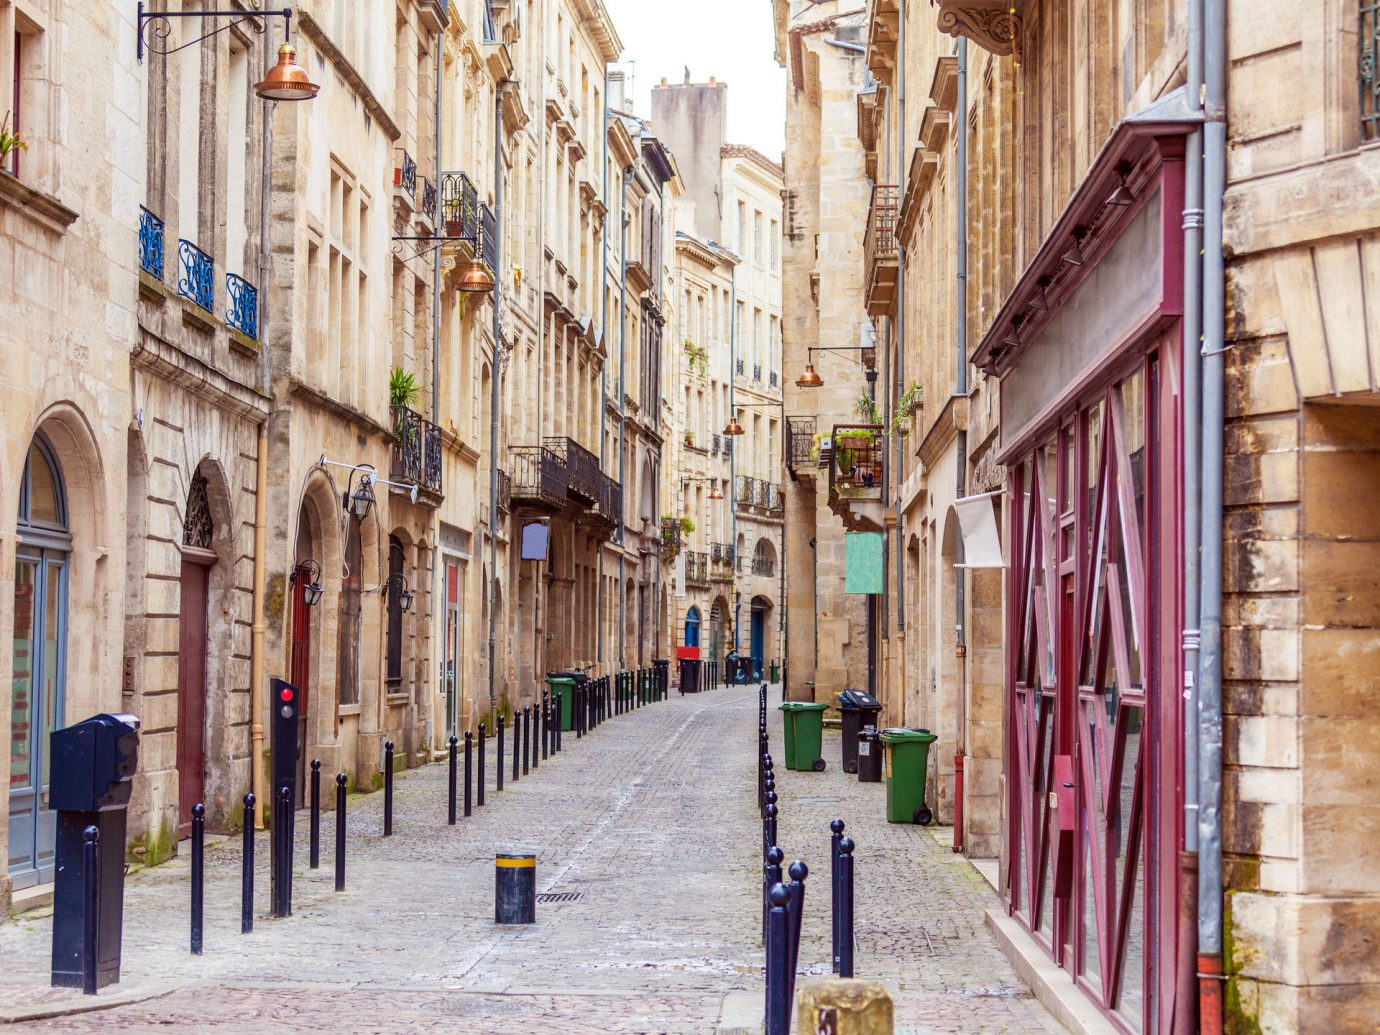 Trip Ideas building way color sidewalk road alley Town street scene outdoor neighbourhood urban area City human settlement wall lane facade infrastructure cityscape ancient history stone